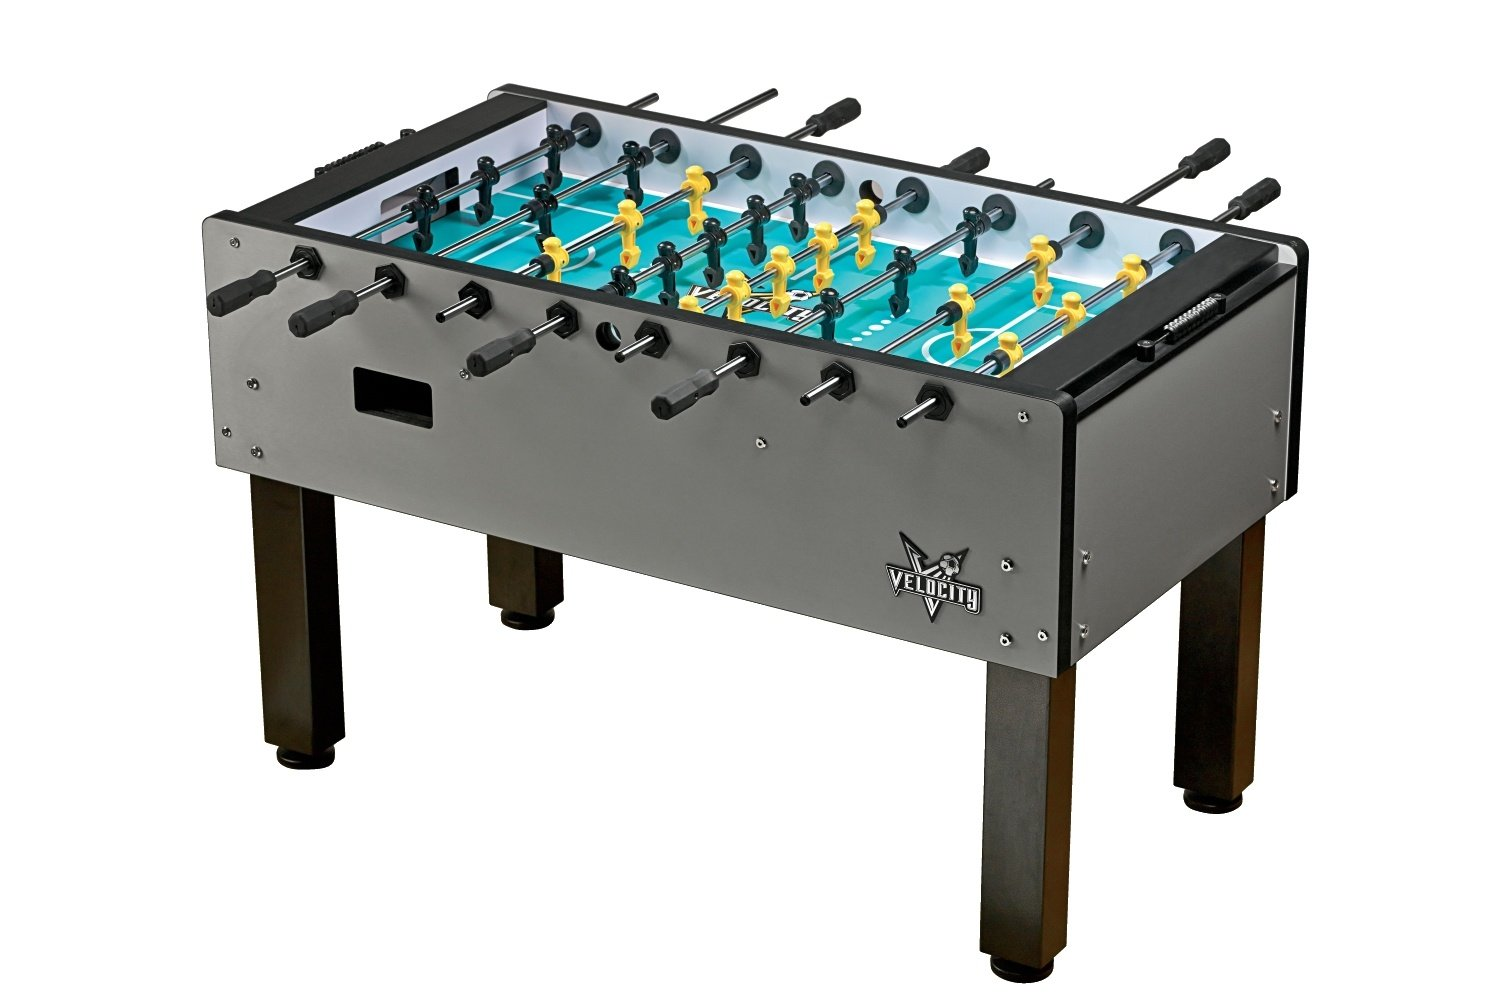 "Velocity Professional Foosball Table by HJ Scott, 3 Goalie, Silver 56 3⁄4"" x 29 3⁄4"" x 35 1⁄2"", VF5000 by HJ Scott"